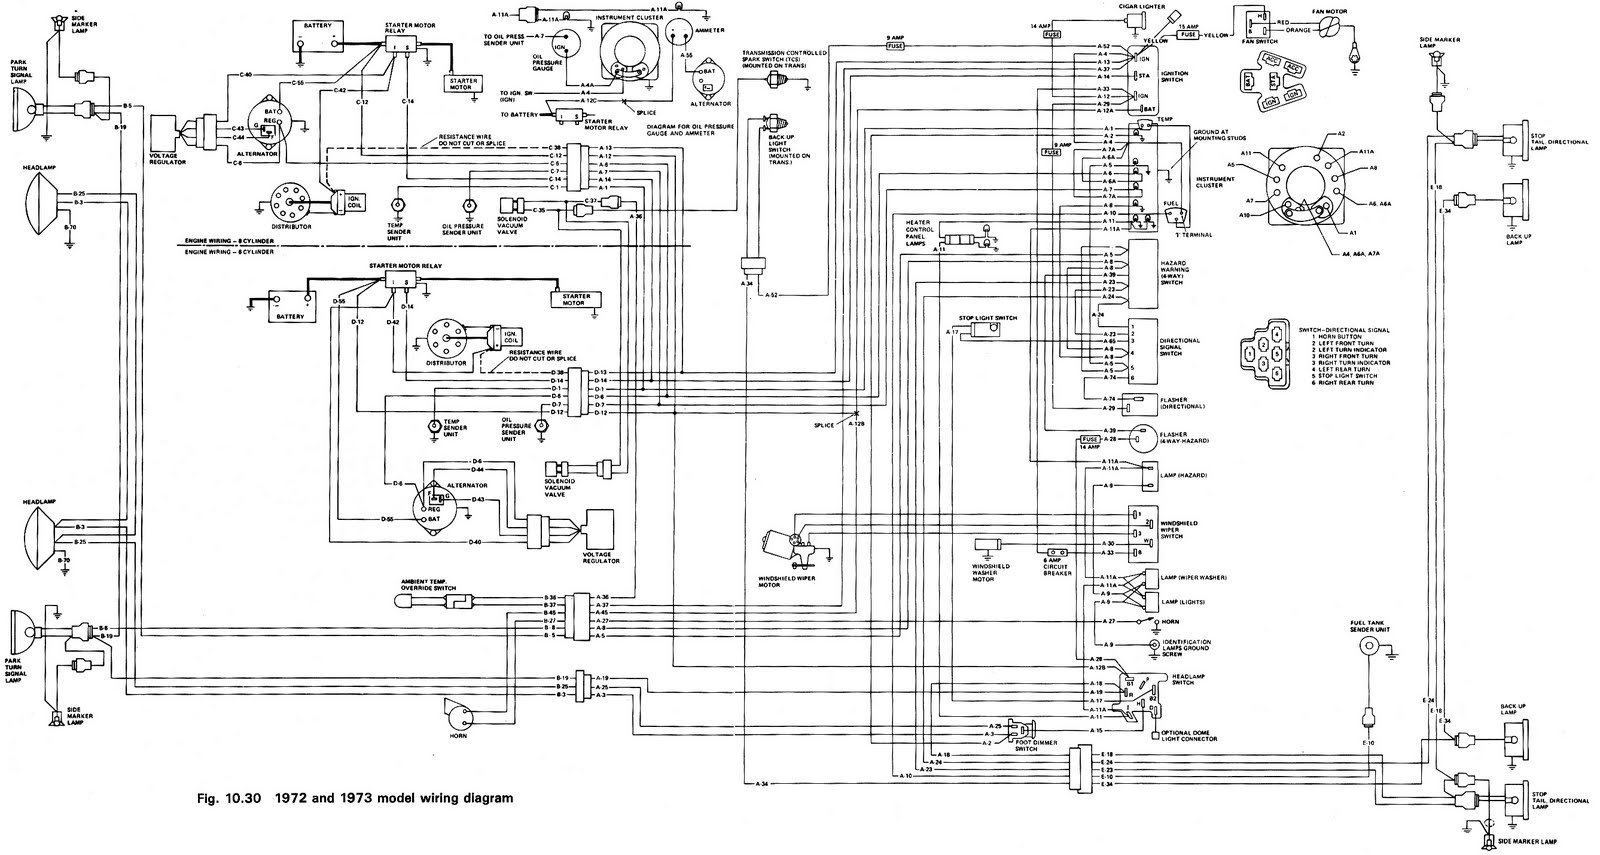 Jeep Wiring Diagrams 1972 And 1973 Cj - Wiring Diagrams List on